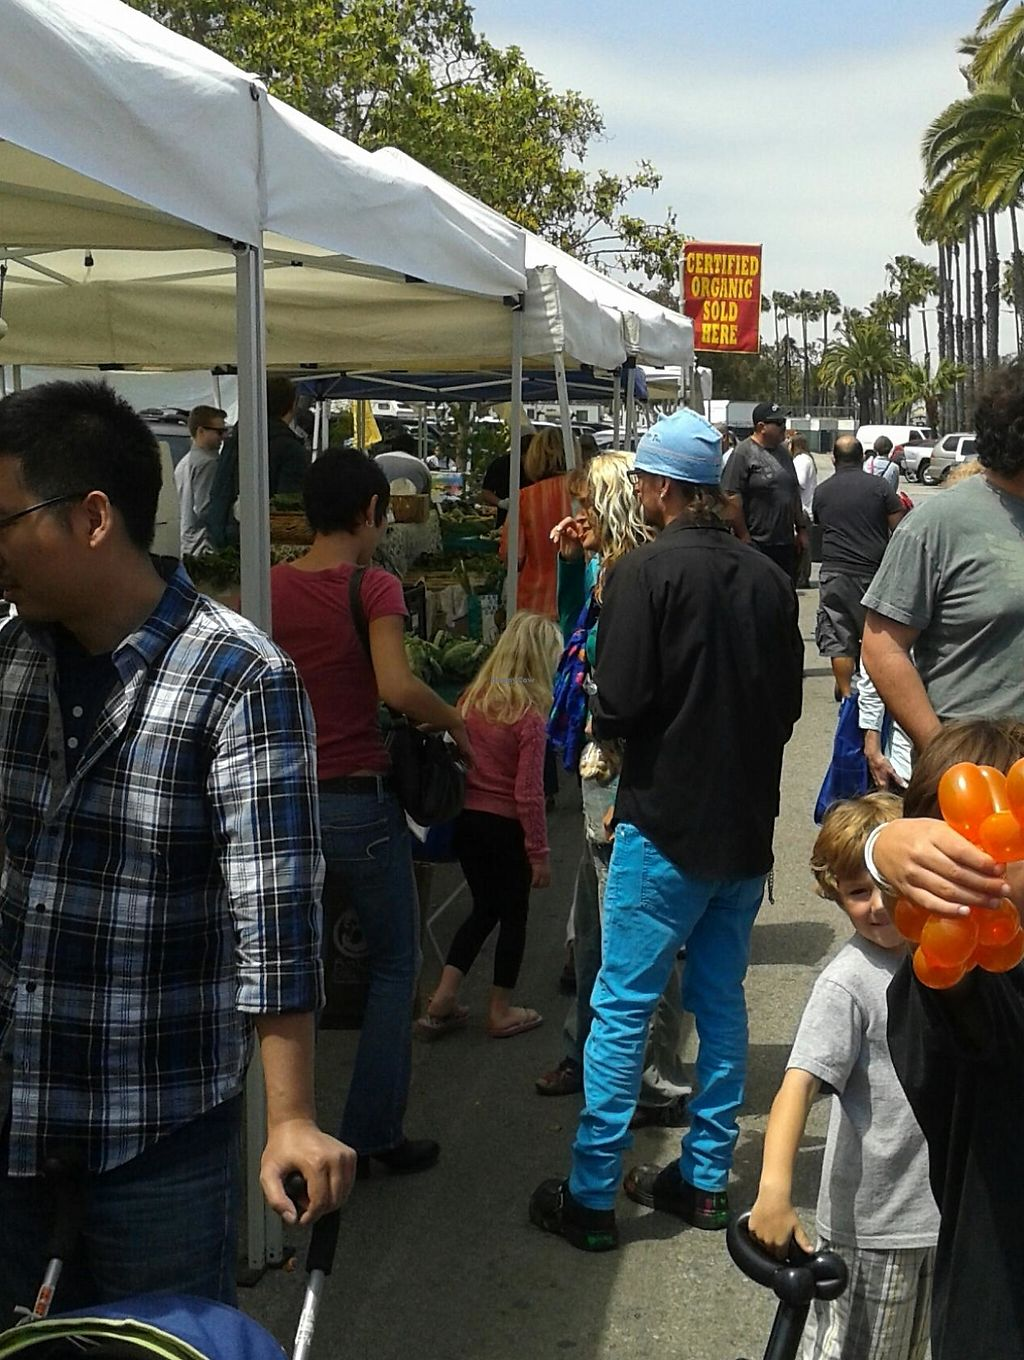 """Photo of Uptown Farmer's Market  by <a href=""""/members/profile/chobesoy"""">chobesoy</a> <br/>Organic veggies up and down <br/> April 13, 2014  - <a href='/contact/abuse/image/8283/193460'>Report</a>"""